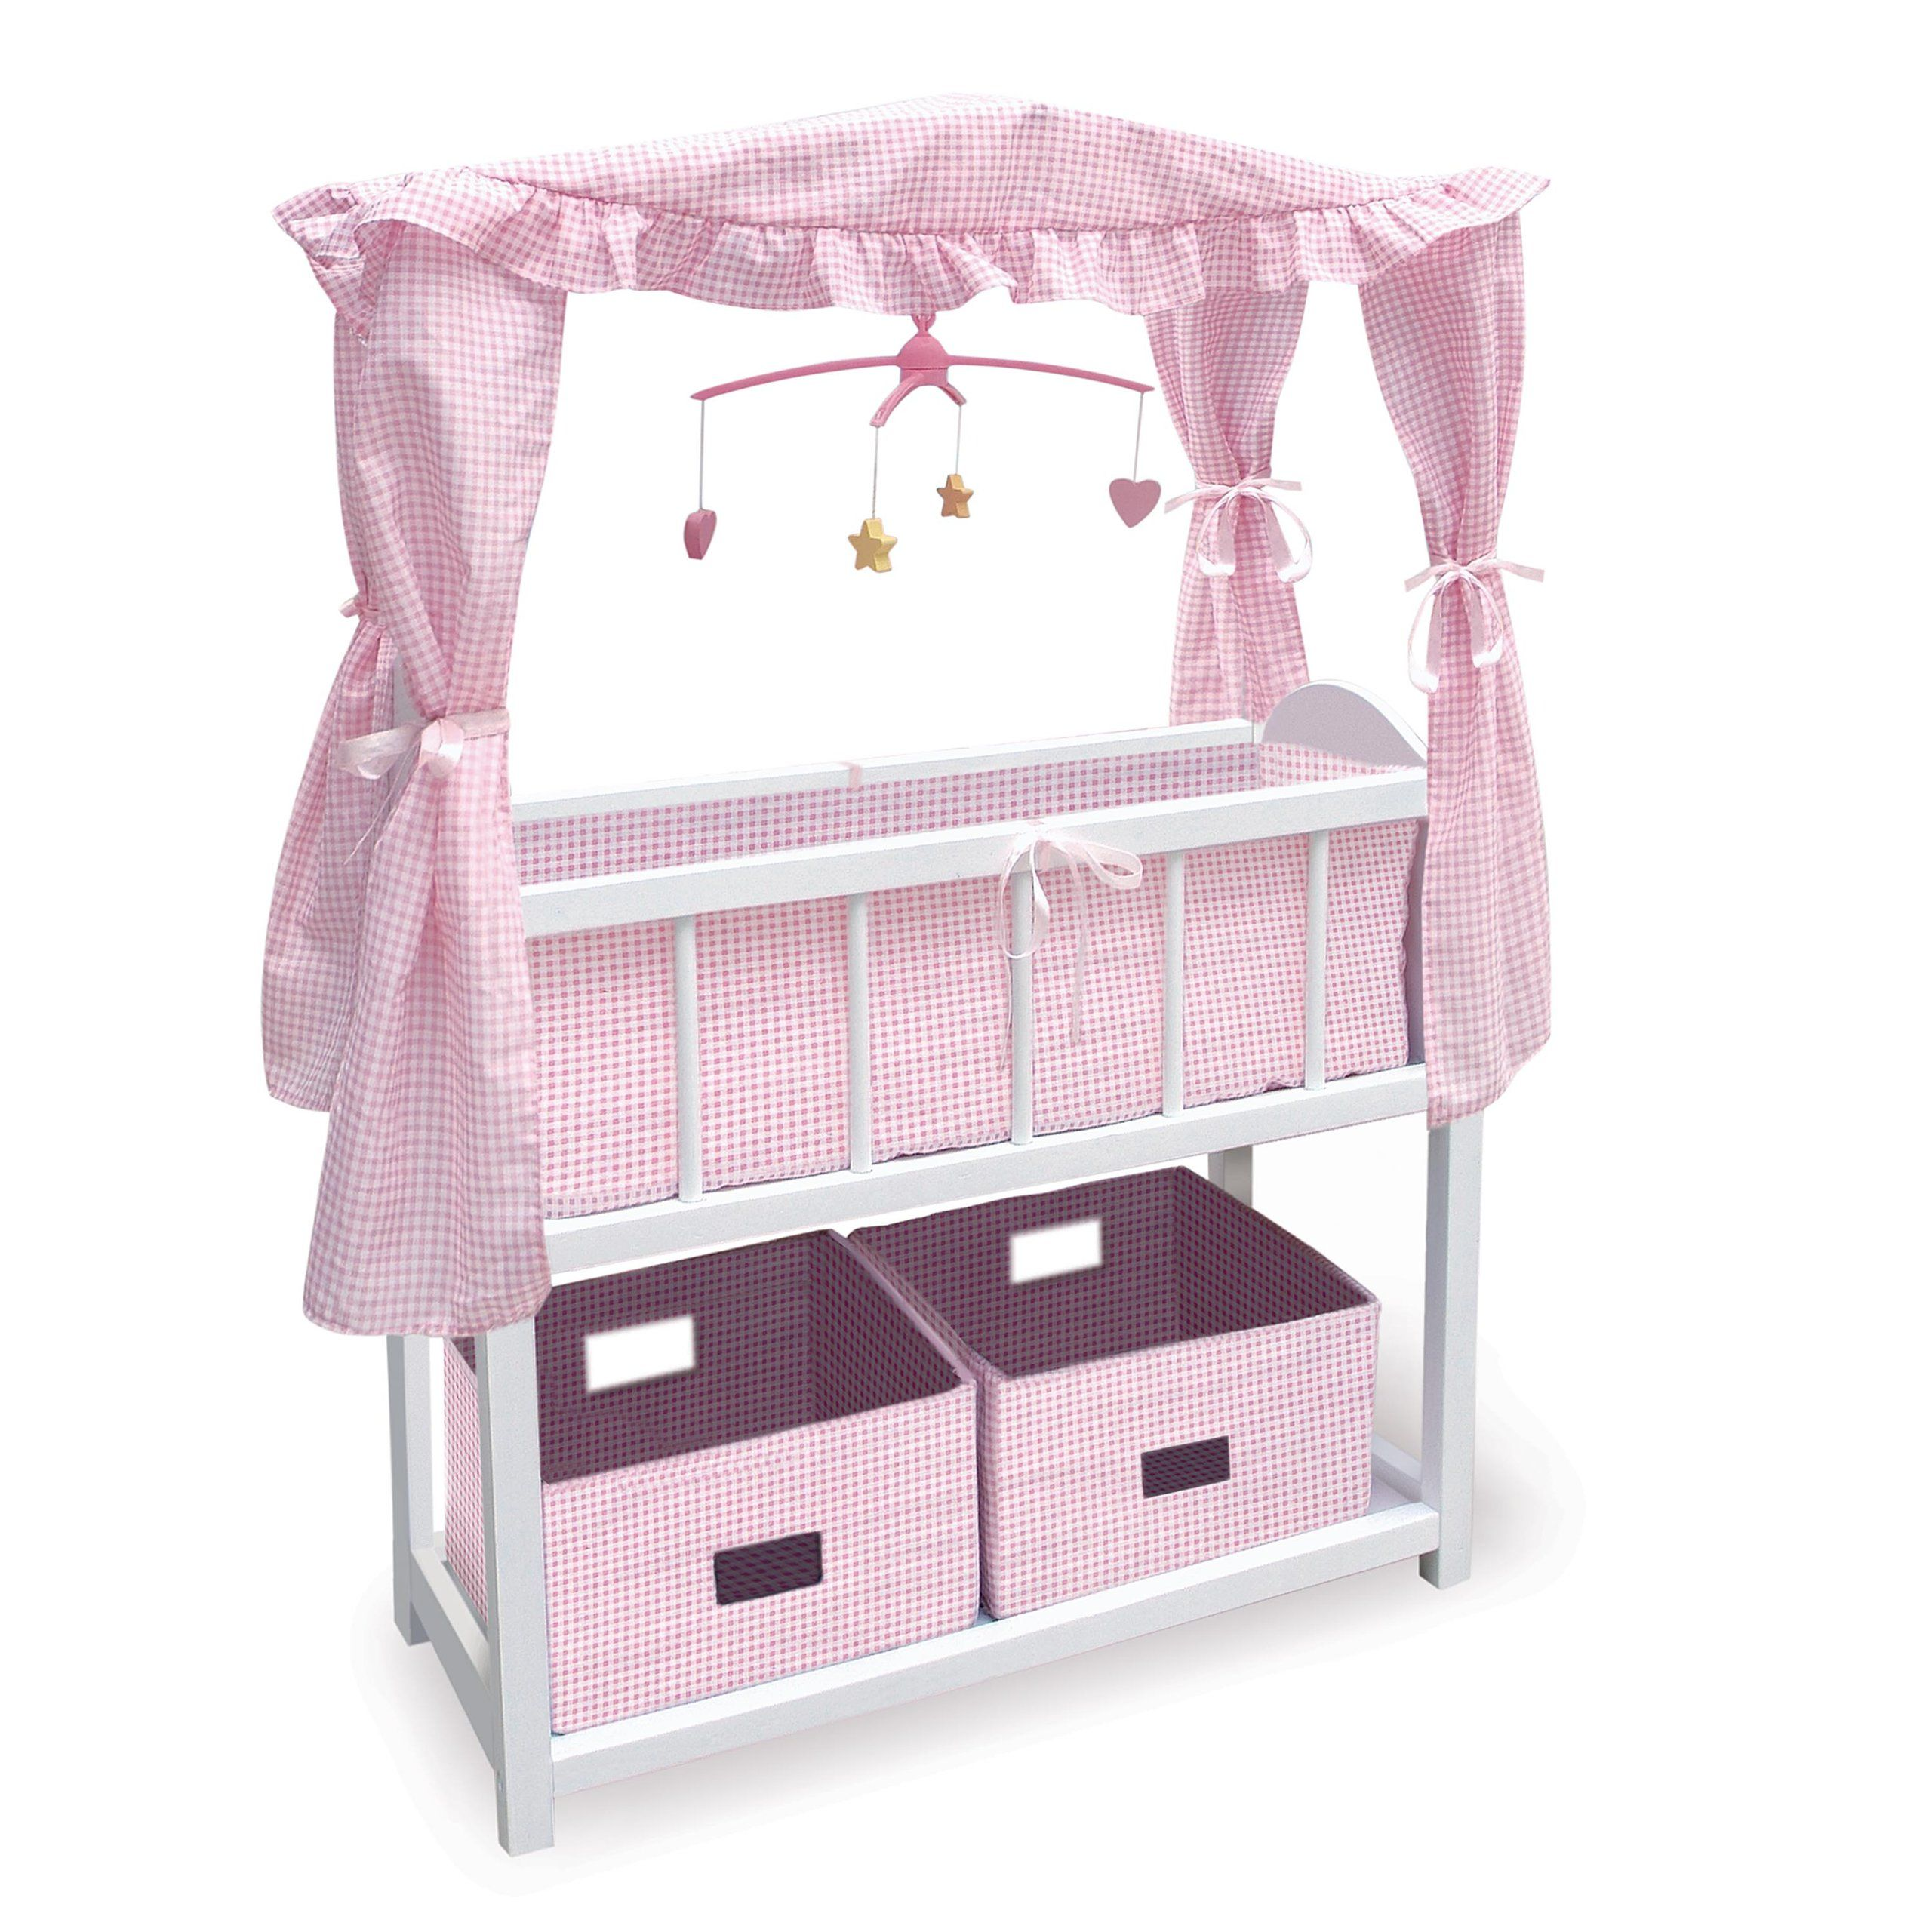 Badger Basket Canopy Doll Crib with Baskets, Bedding & Mobile (fits American Girl dolls)